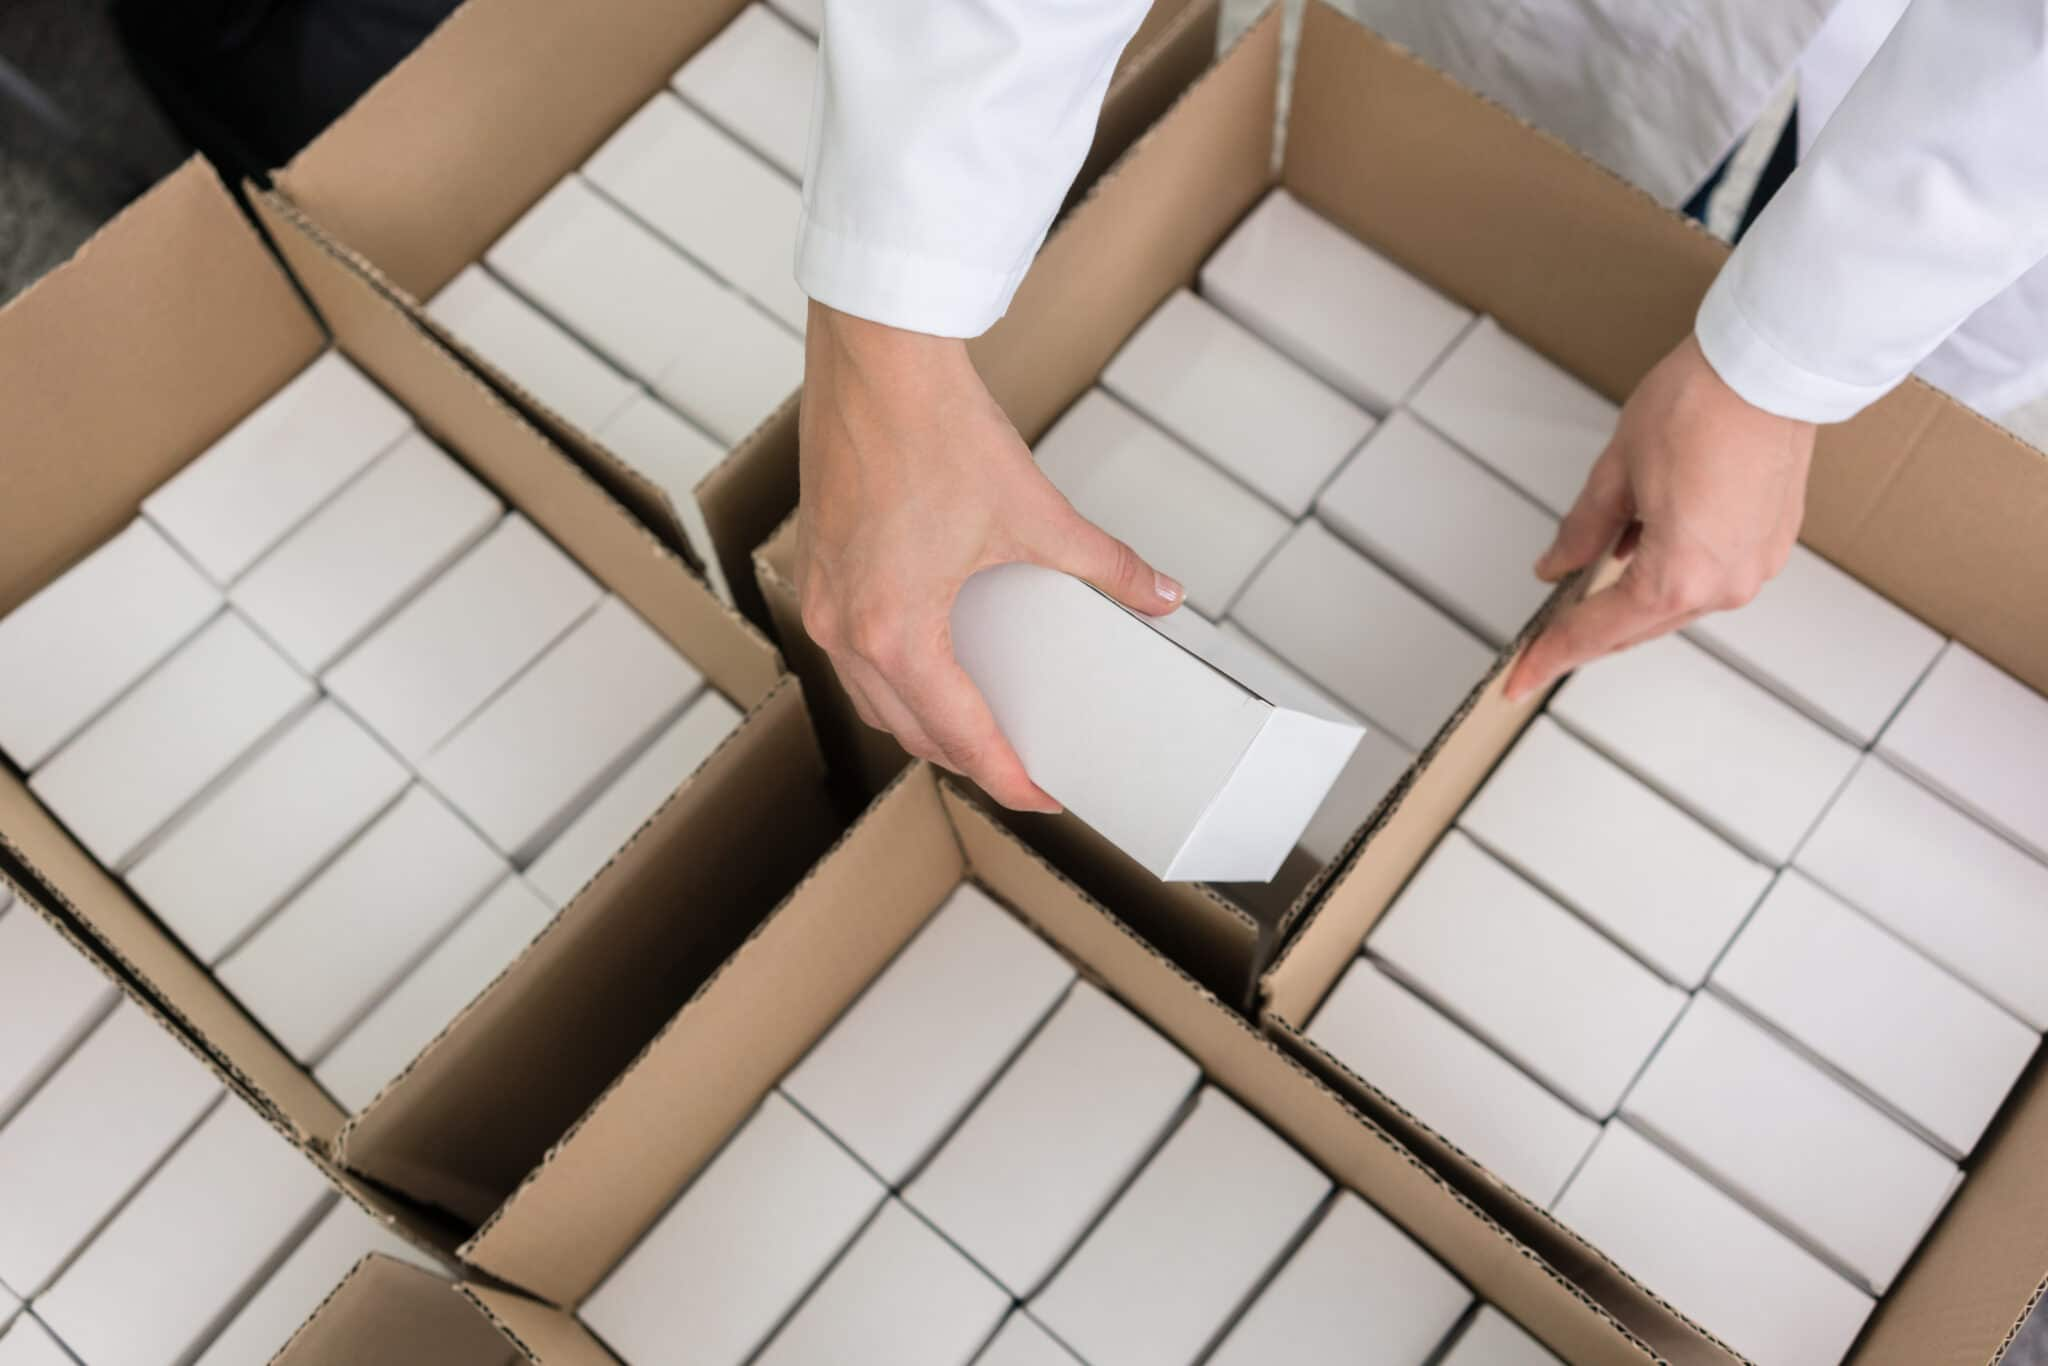 Tips To Improve Product Packaging In A Pandemic